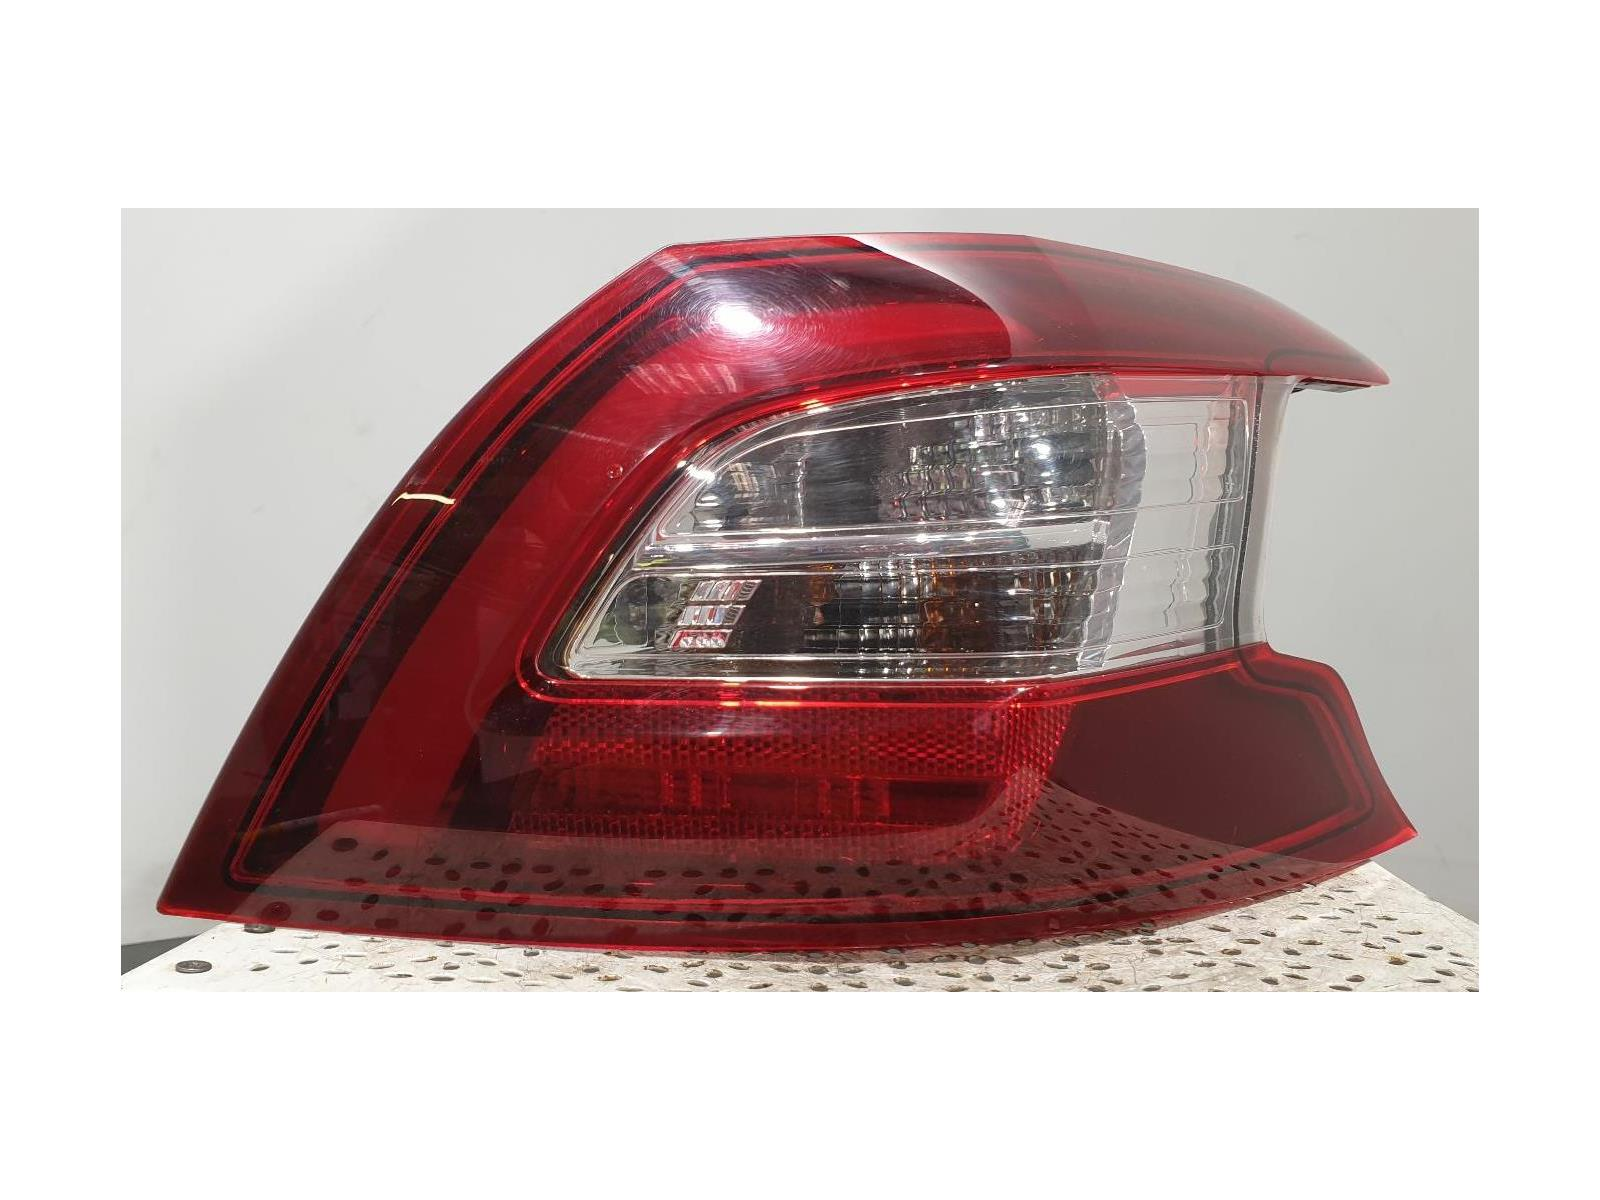 PEUGEOT 308 MK2 (T9) 2013 On - Right Rear Light 9677817580 81250201